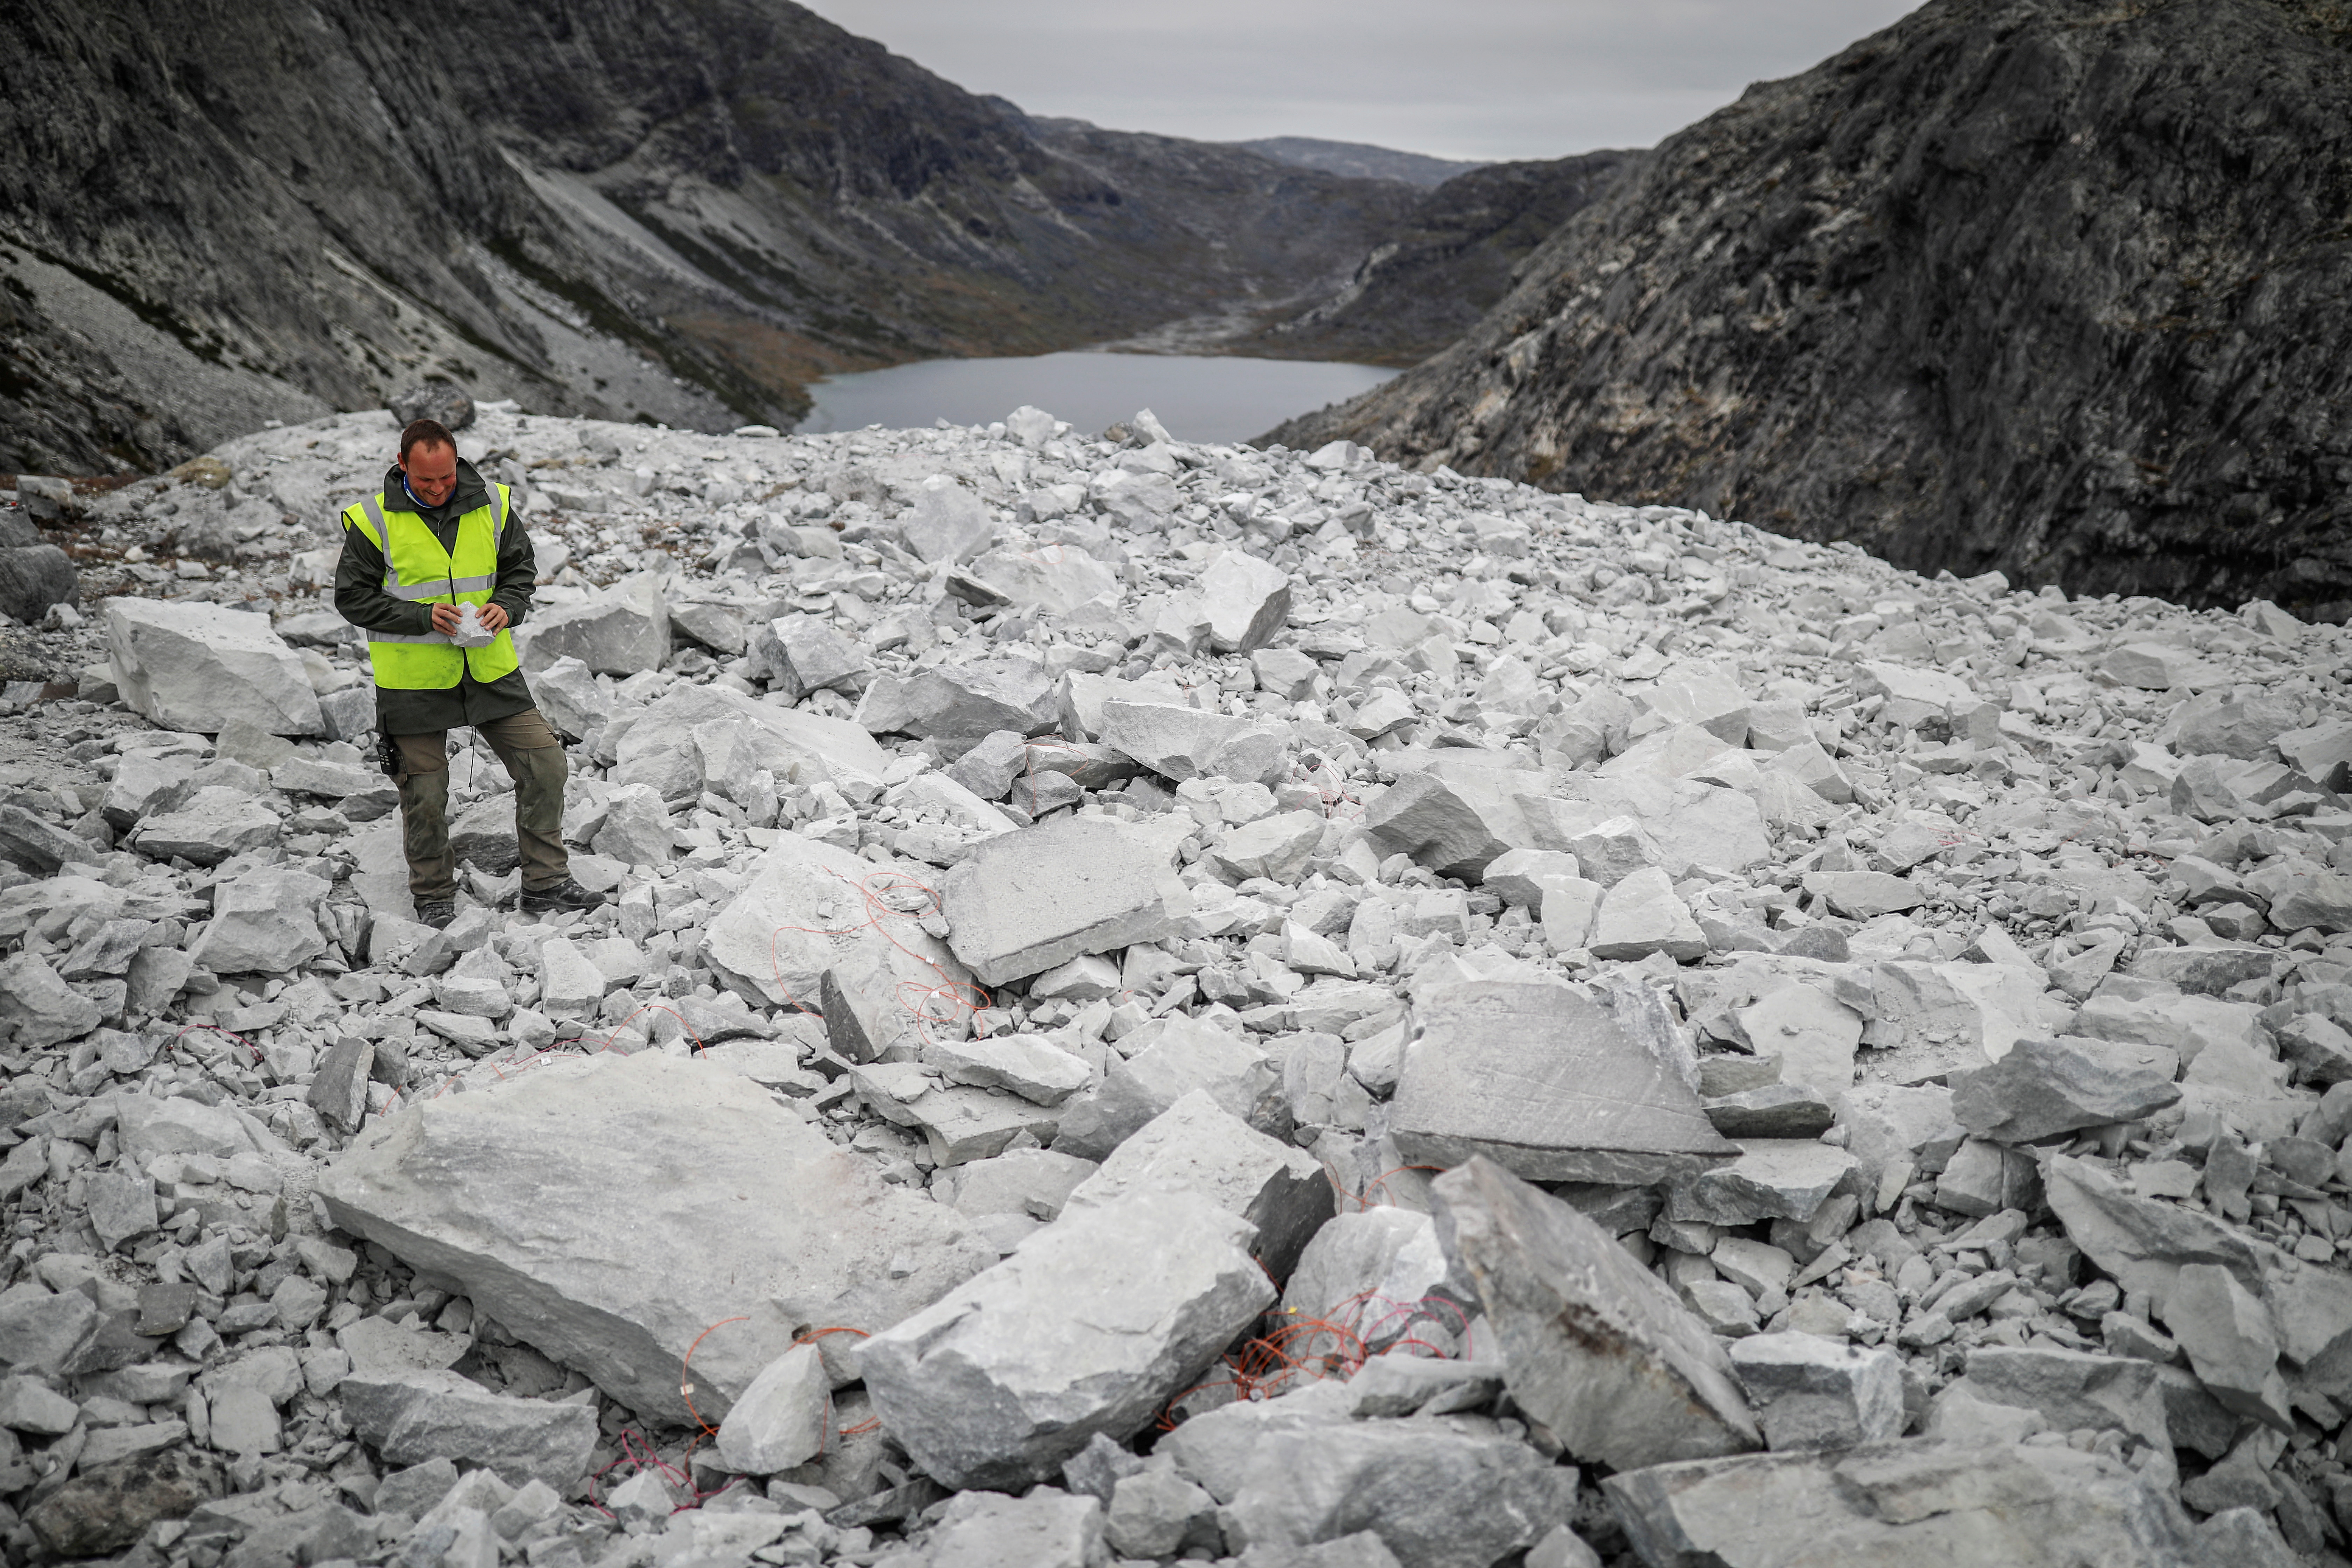 A worker of the company Greenland Anorthosite Mining checks stones after an explosion at an exploration site of an anorthosite deposit close to the Qeqertarsuatsiaat fjord, Greenland, September 11, 2021. REUTERS/Hannibal Hanschke